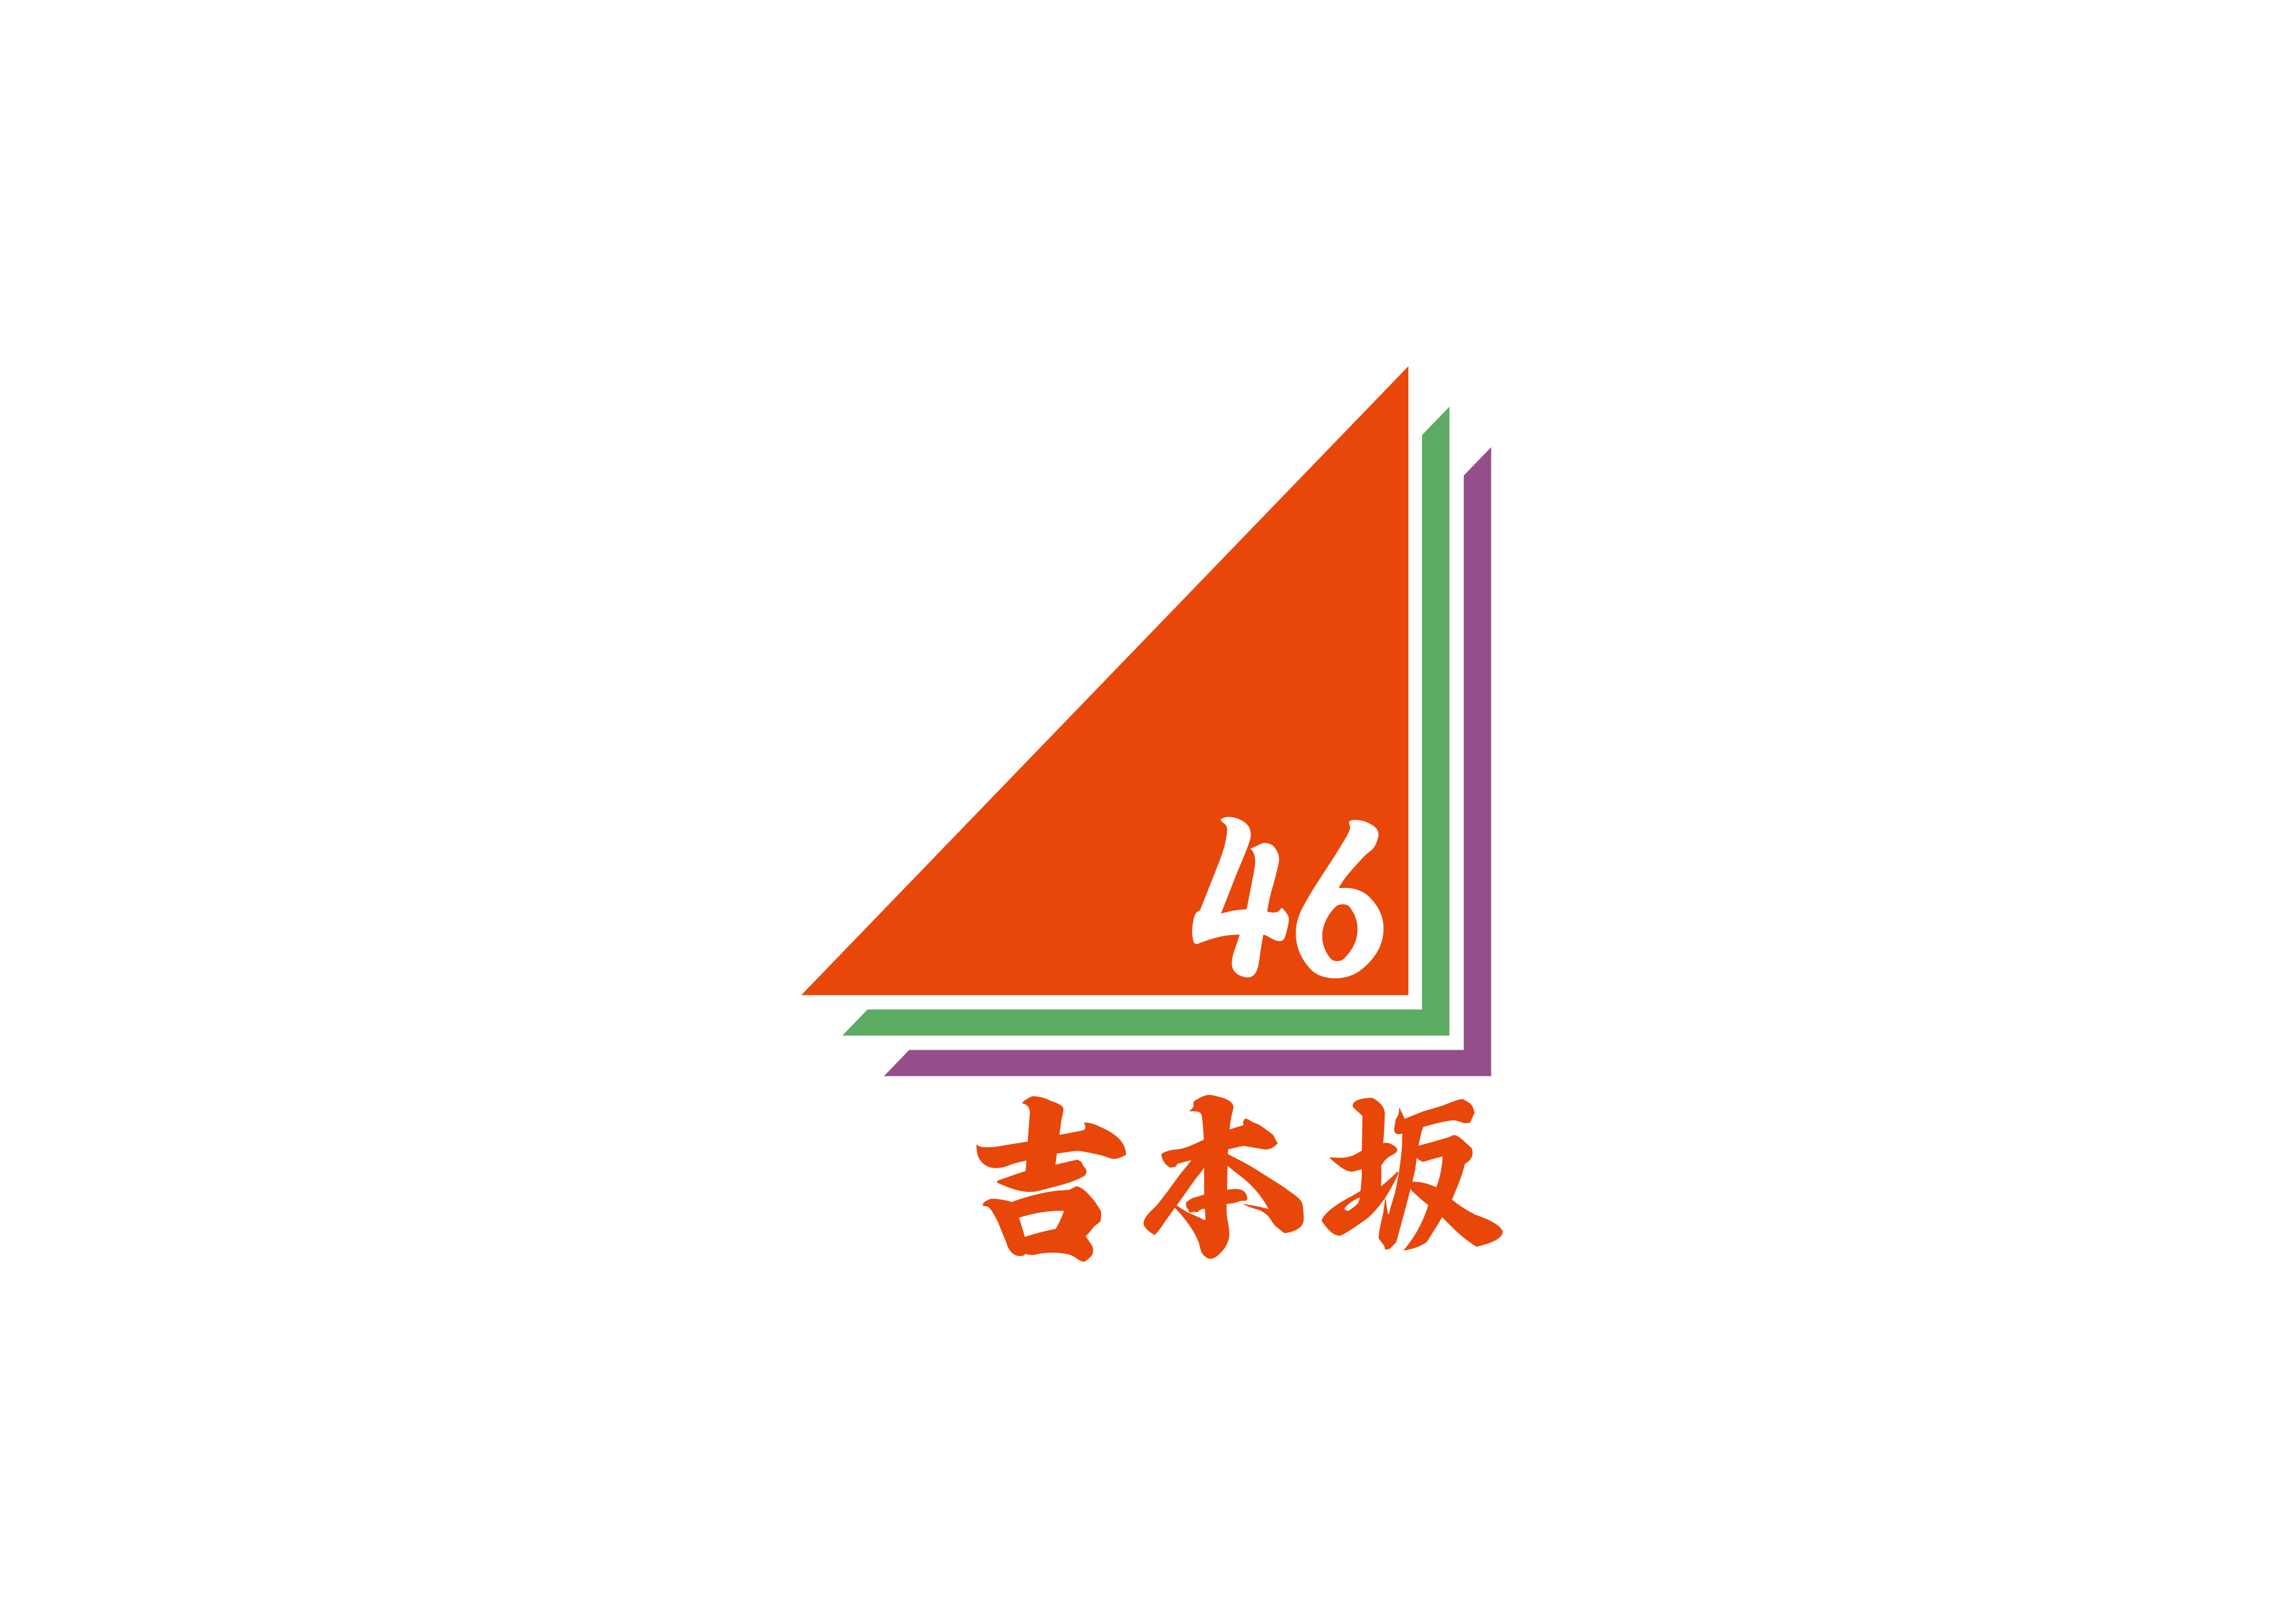 http://news.yoshimoto.co.jp/20180509123142-f6be8fdb1a446003bd8f5261b3458a11c0362491.png